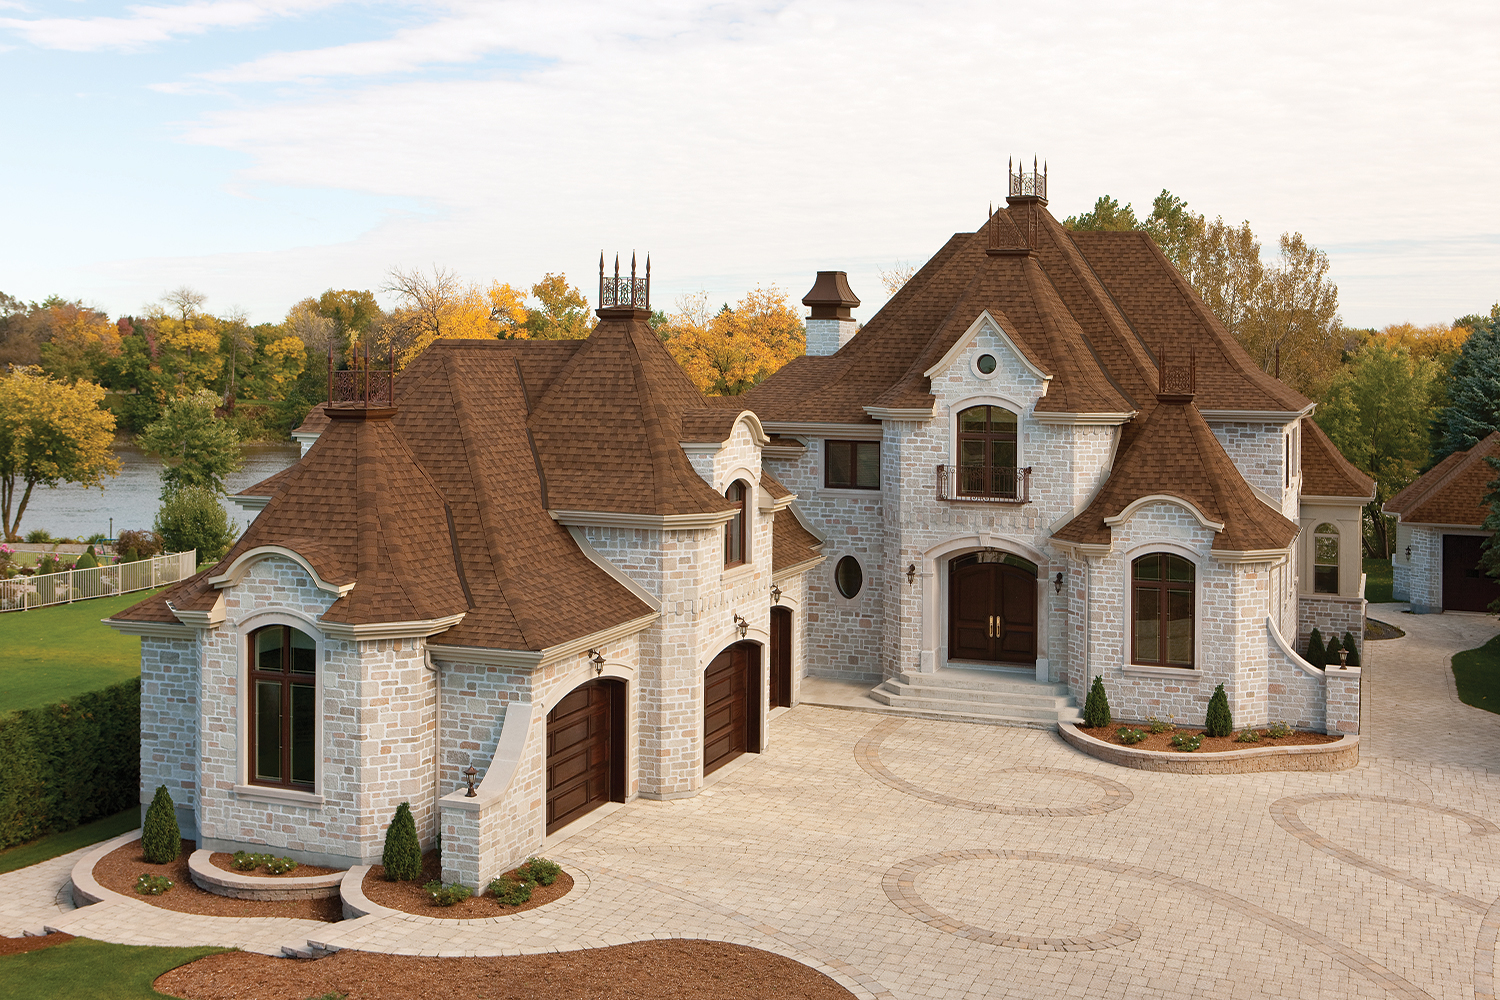 Asphalt roofing shingles in shades of brown